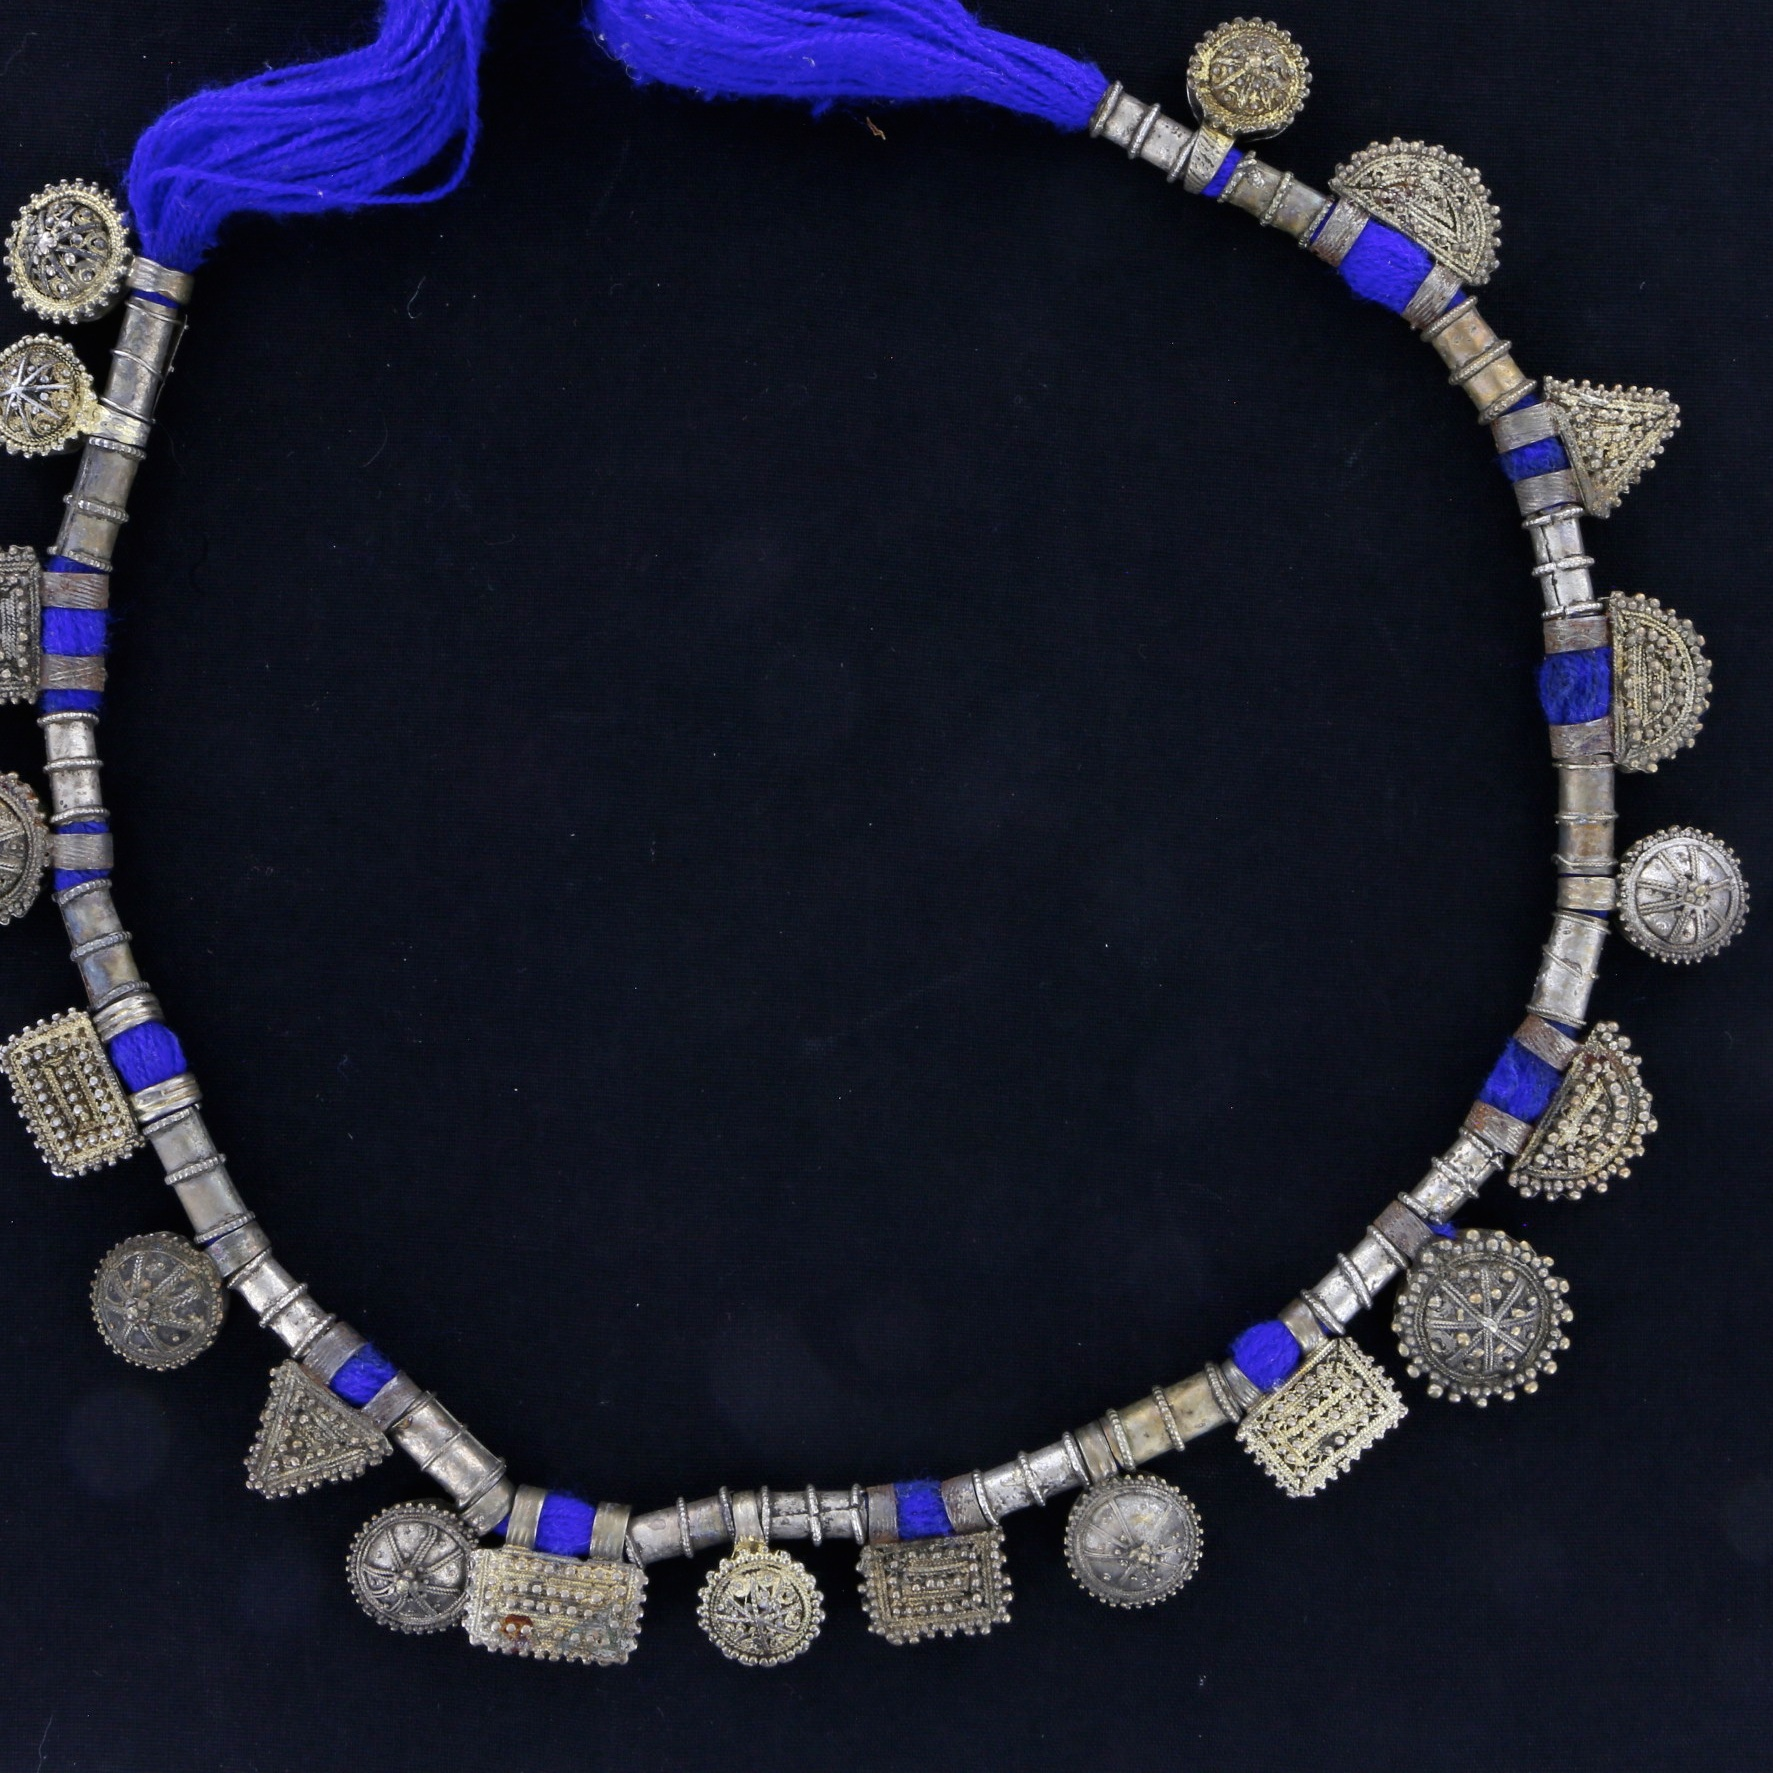 Exceptional necklace with 20 telsum charms 02 03 522